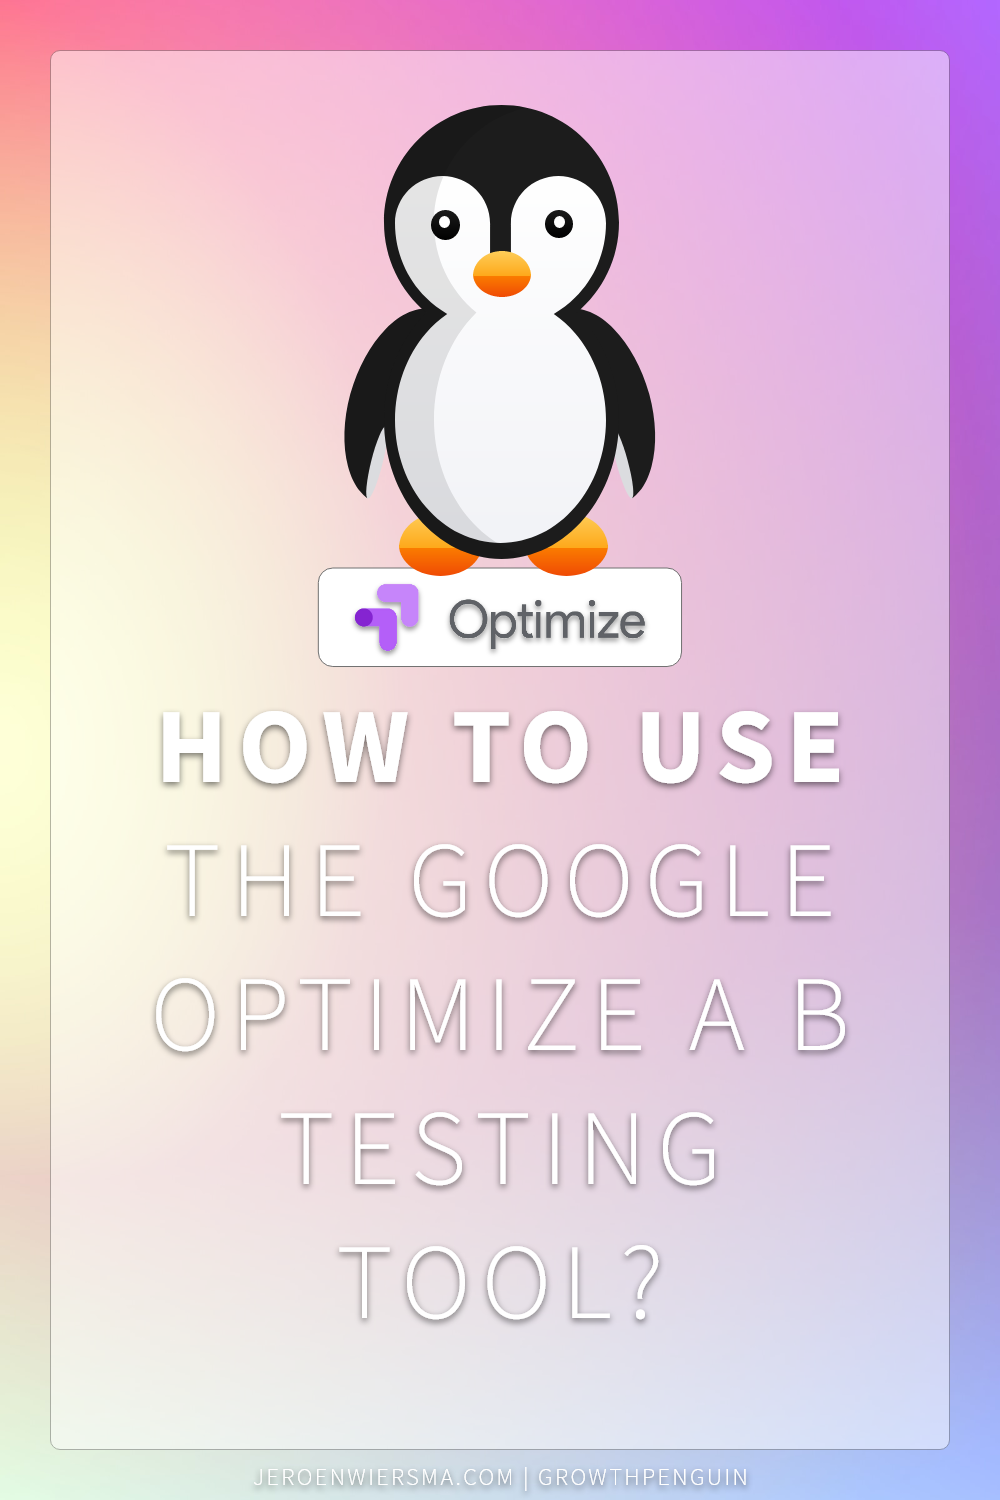 How to use the Google Optimize a b testing tool